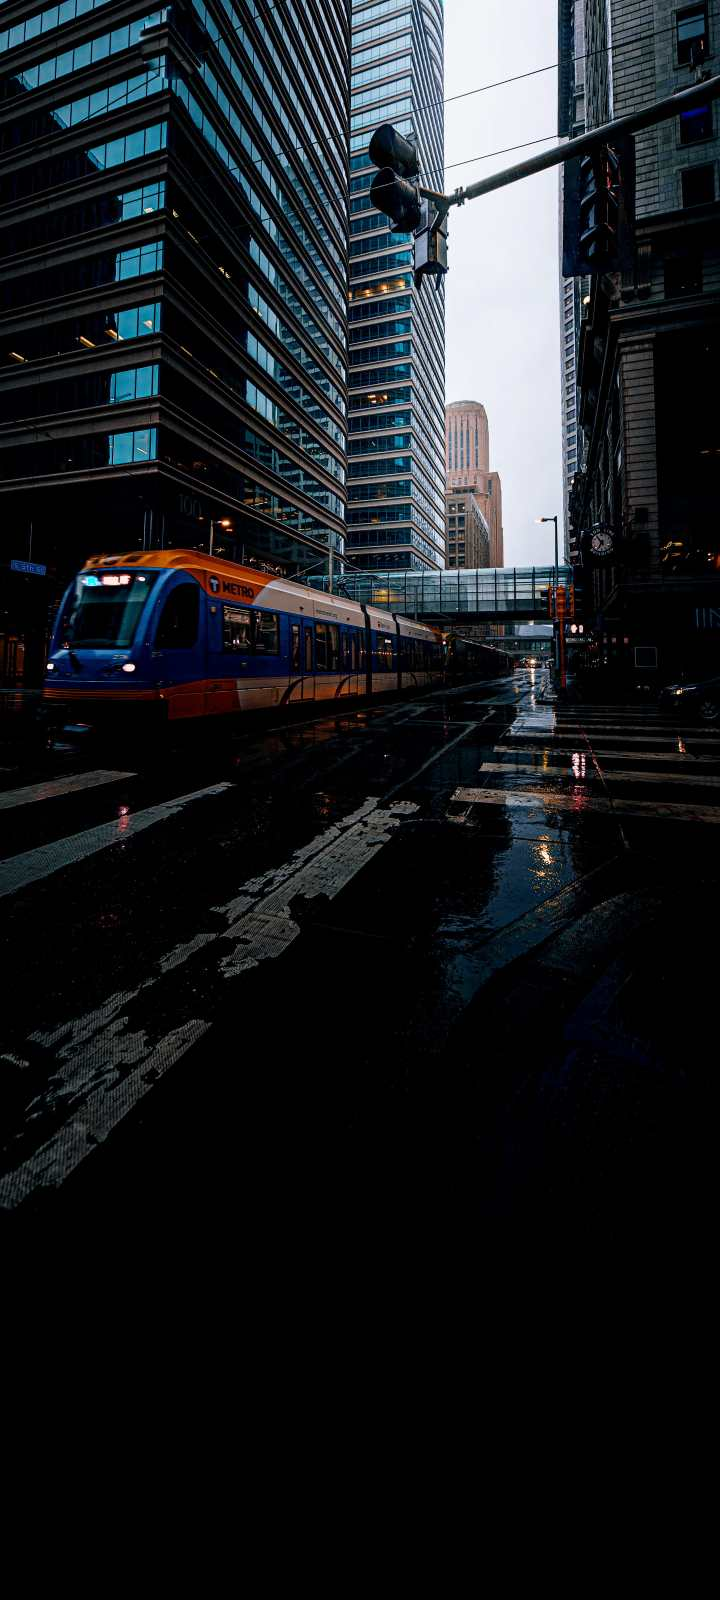 The train of thoughts (2160×4800)